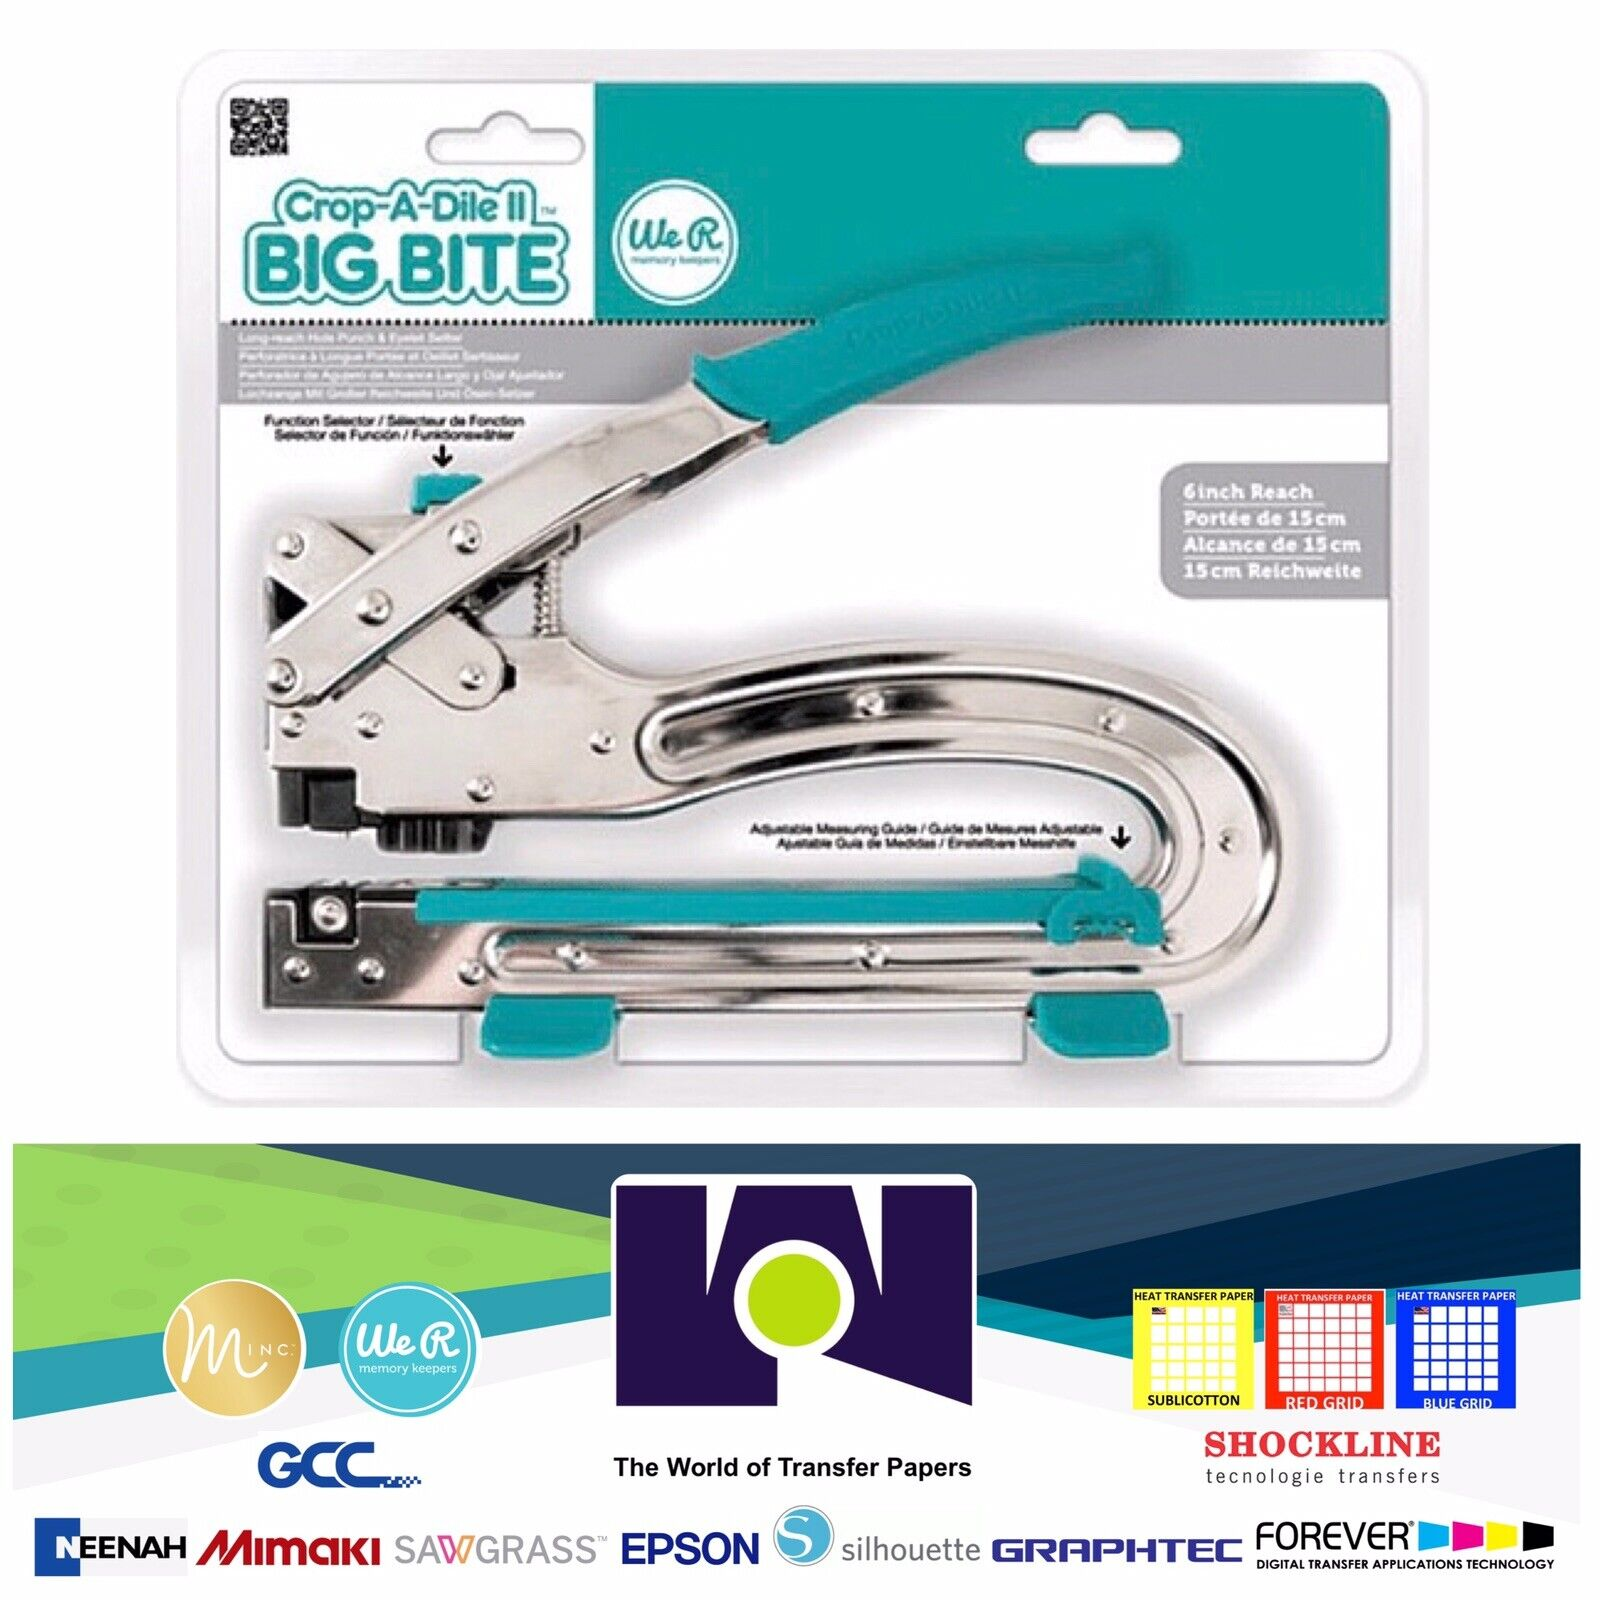 We R Memory Keepers Crop-A-Dile II Big Bite Hole Punch Eyelet Setter Tool 709114